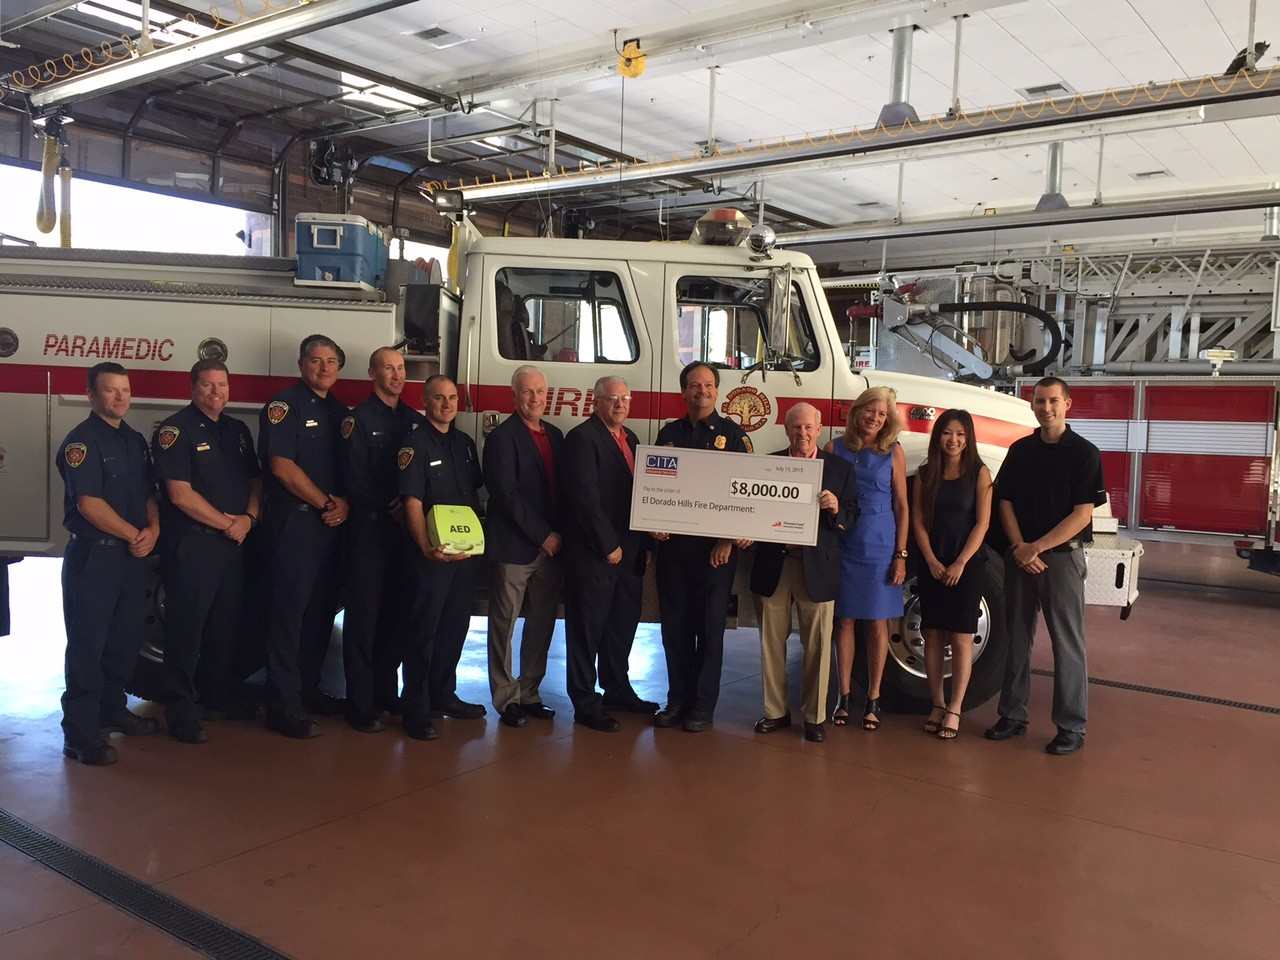 Press Release: AED Grant Awarded